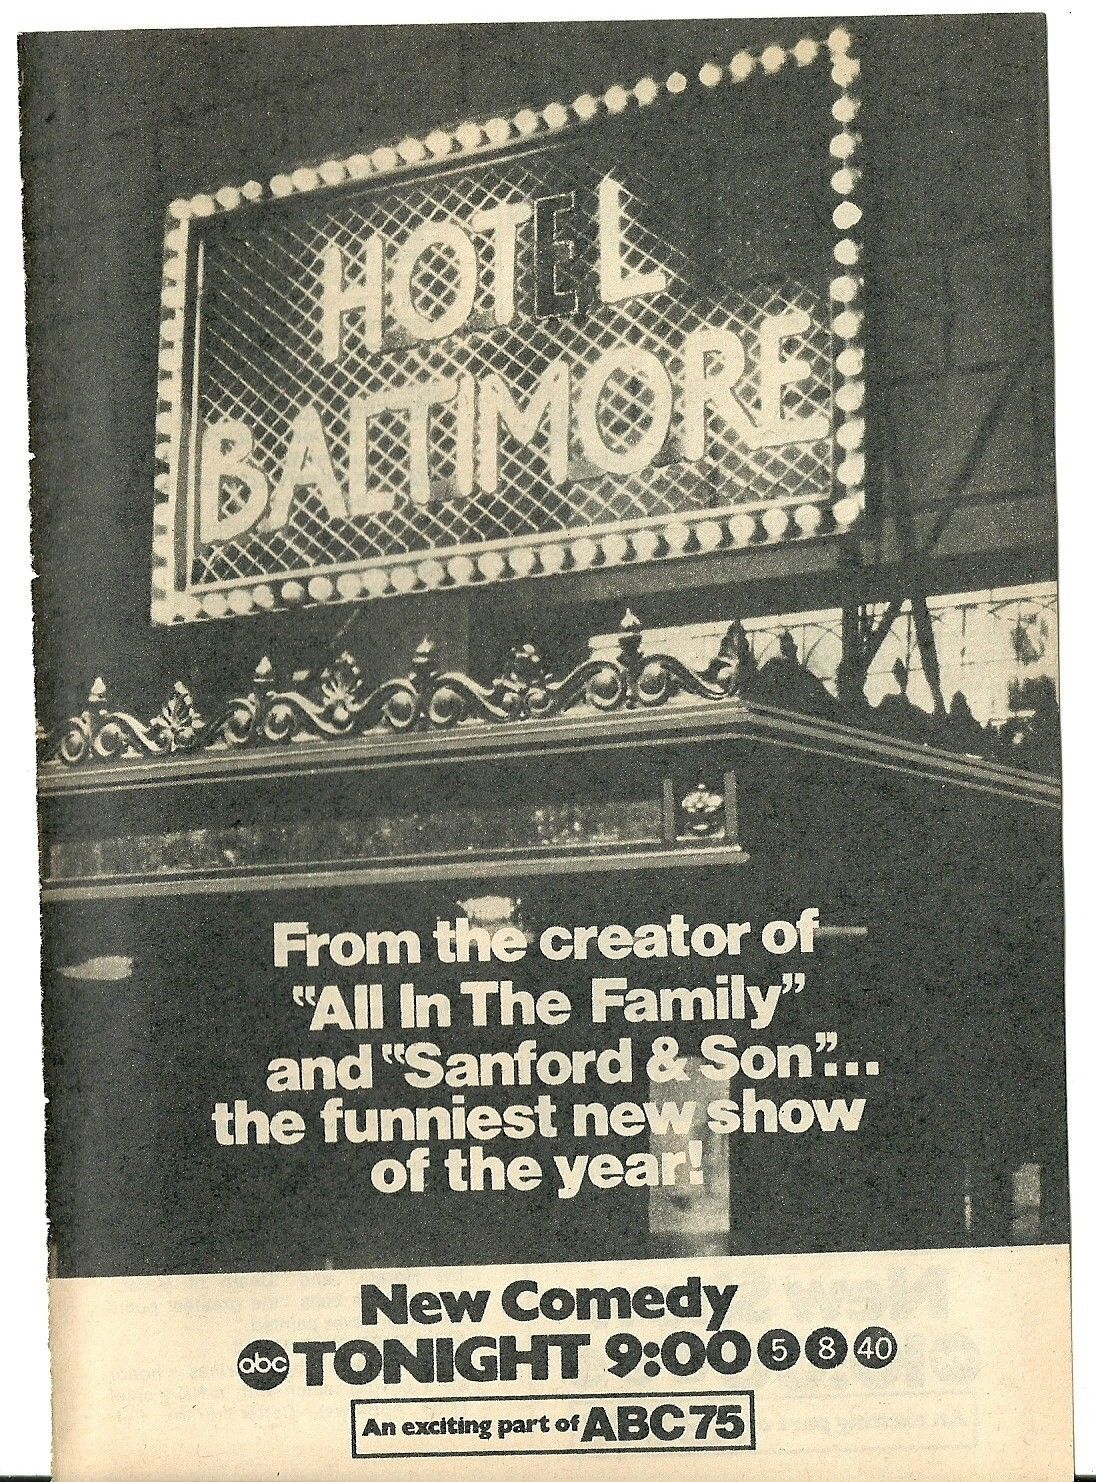 HOT_L_BALTIMORE_Premiere_1975